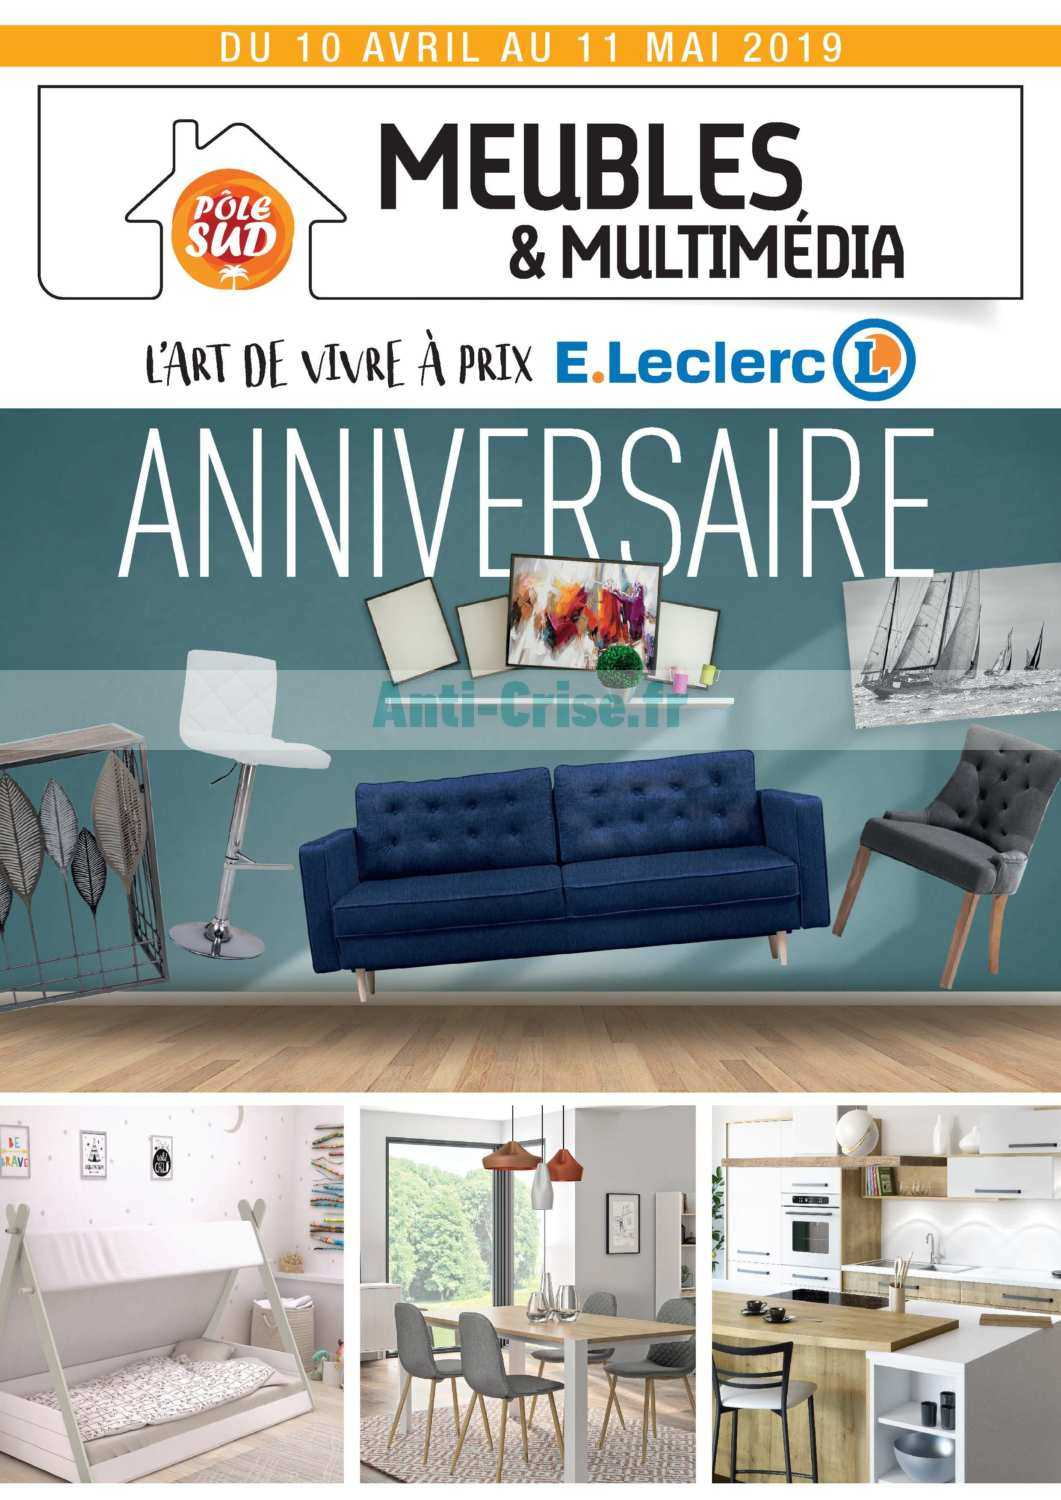 Catalogue Leclerc Local Du 10 Avril Au 11 Mai 2019 Basse Goulaine Catalogues Promos Bons Plans Economisez Anti Crise Fr